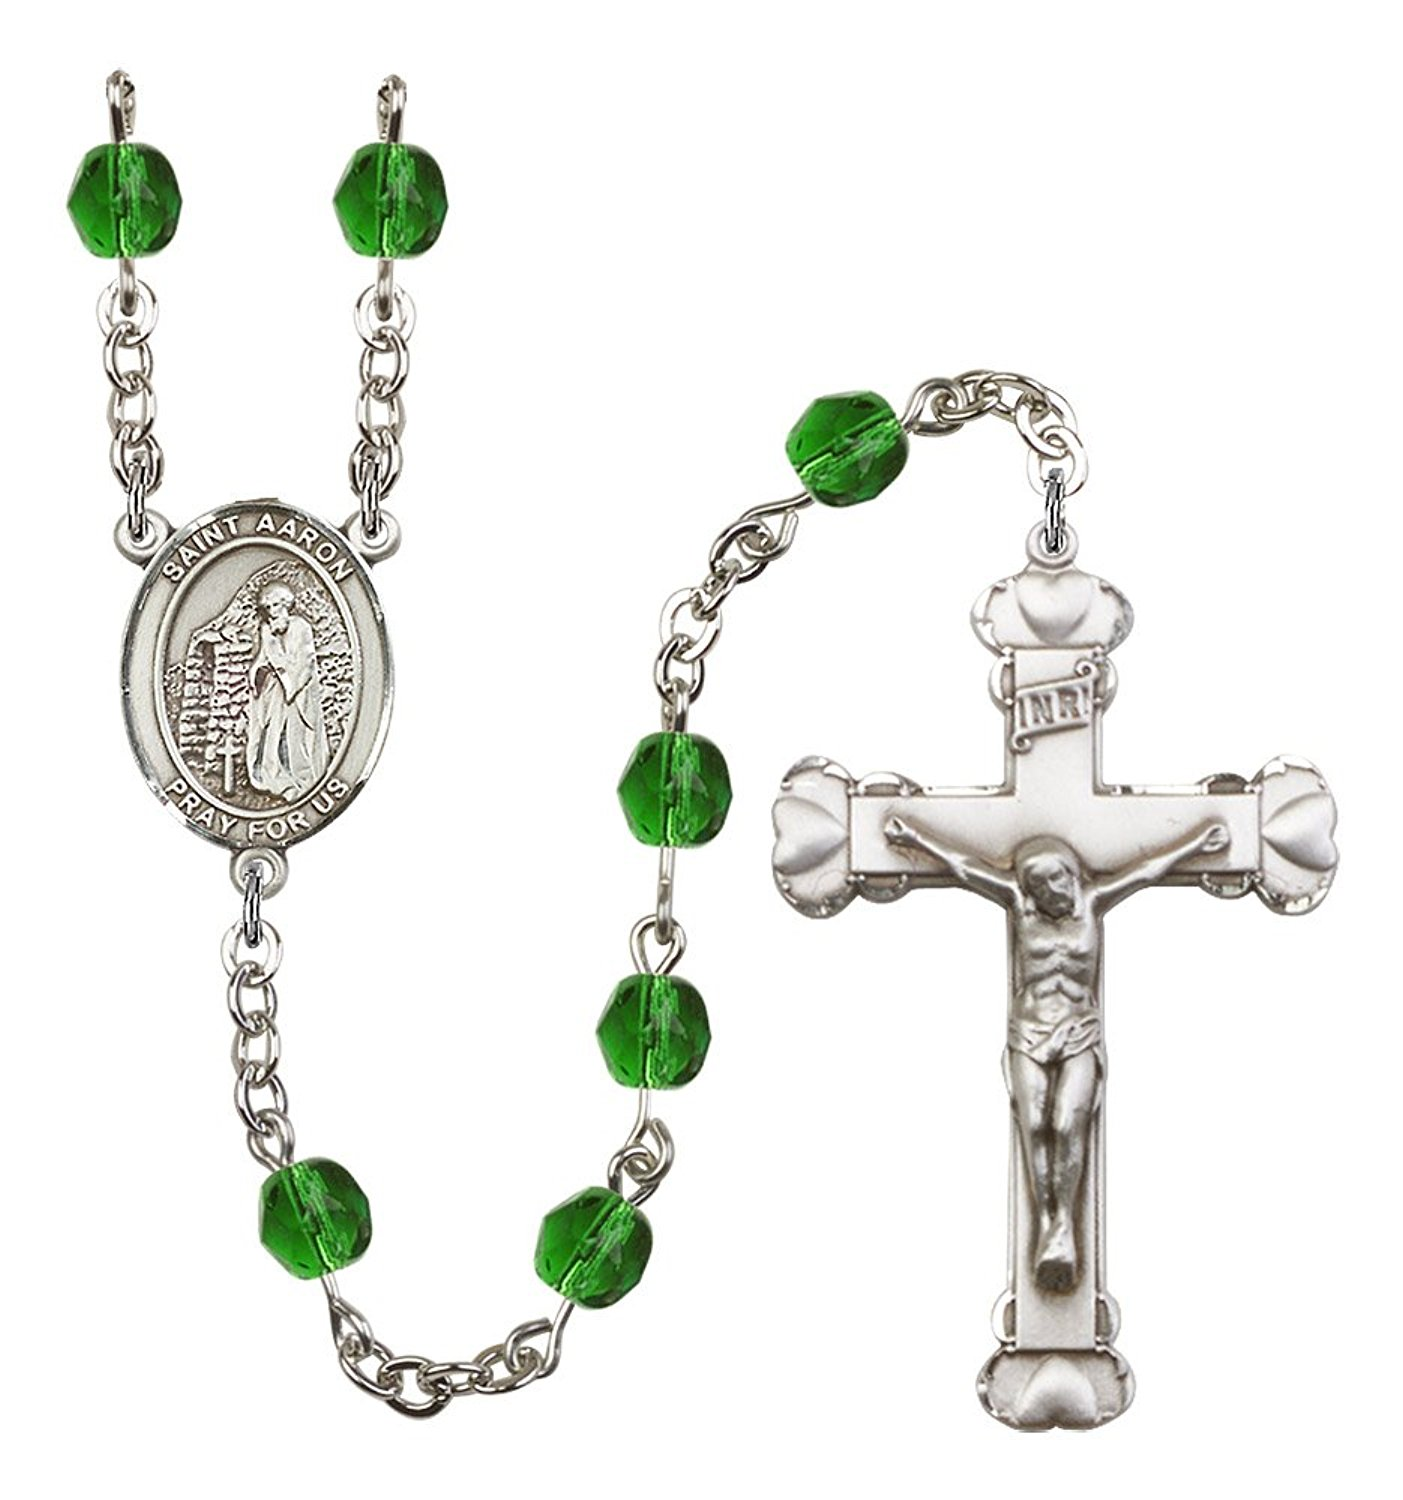 Silver Finish St. Aaron Rosary with 6mm Emerald Color Fire Polished Beads, St. Aaron Center, and 1 5/8 x 1 inch Crucifix, Gift Boxed